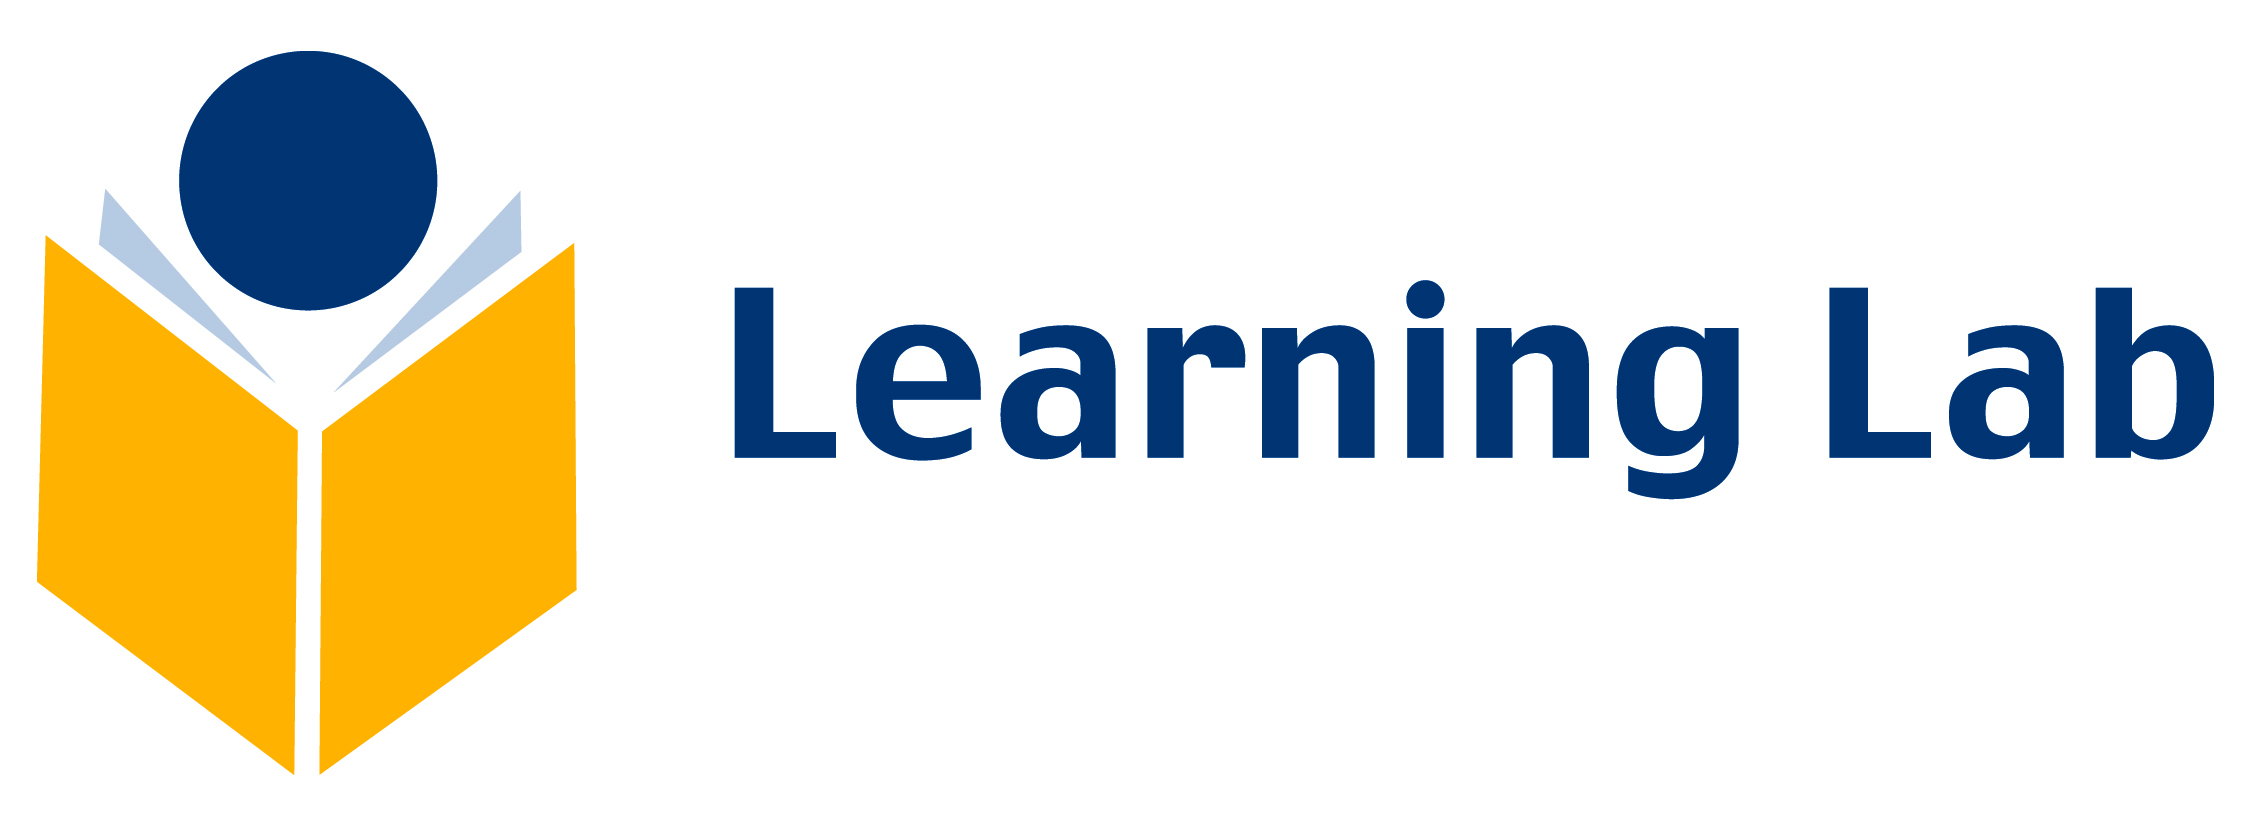 Learning Lab, Inc